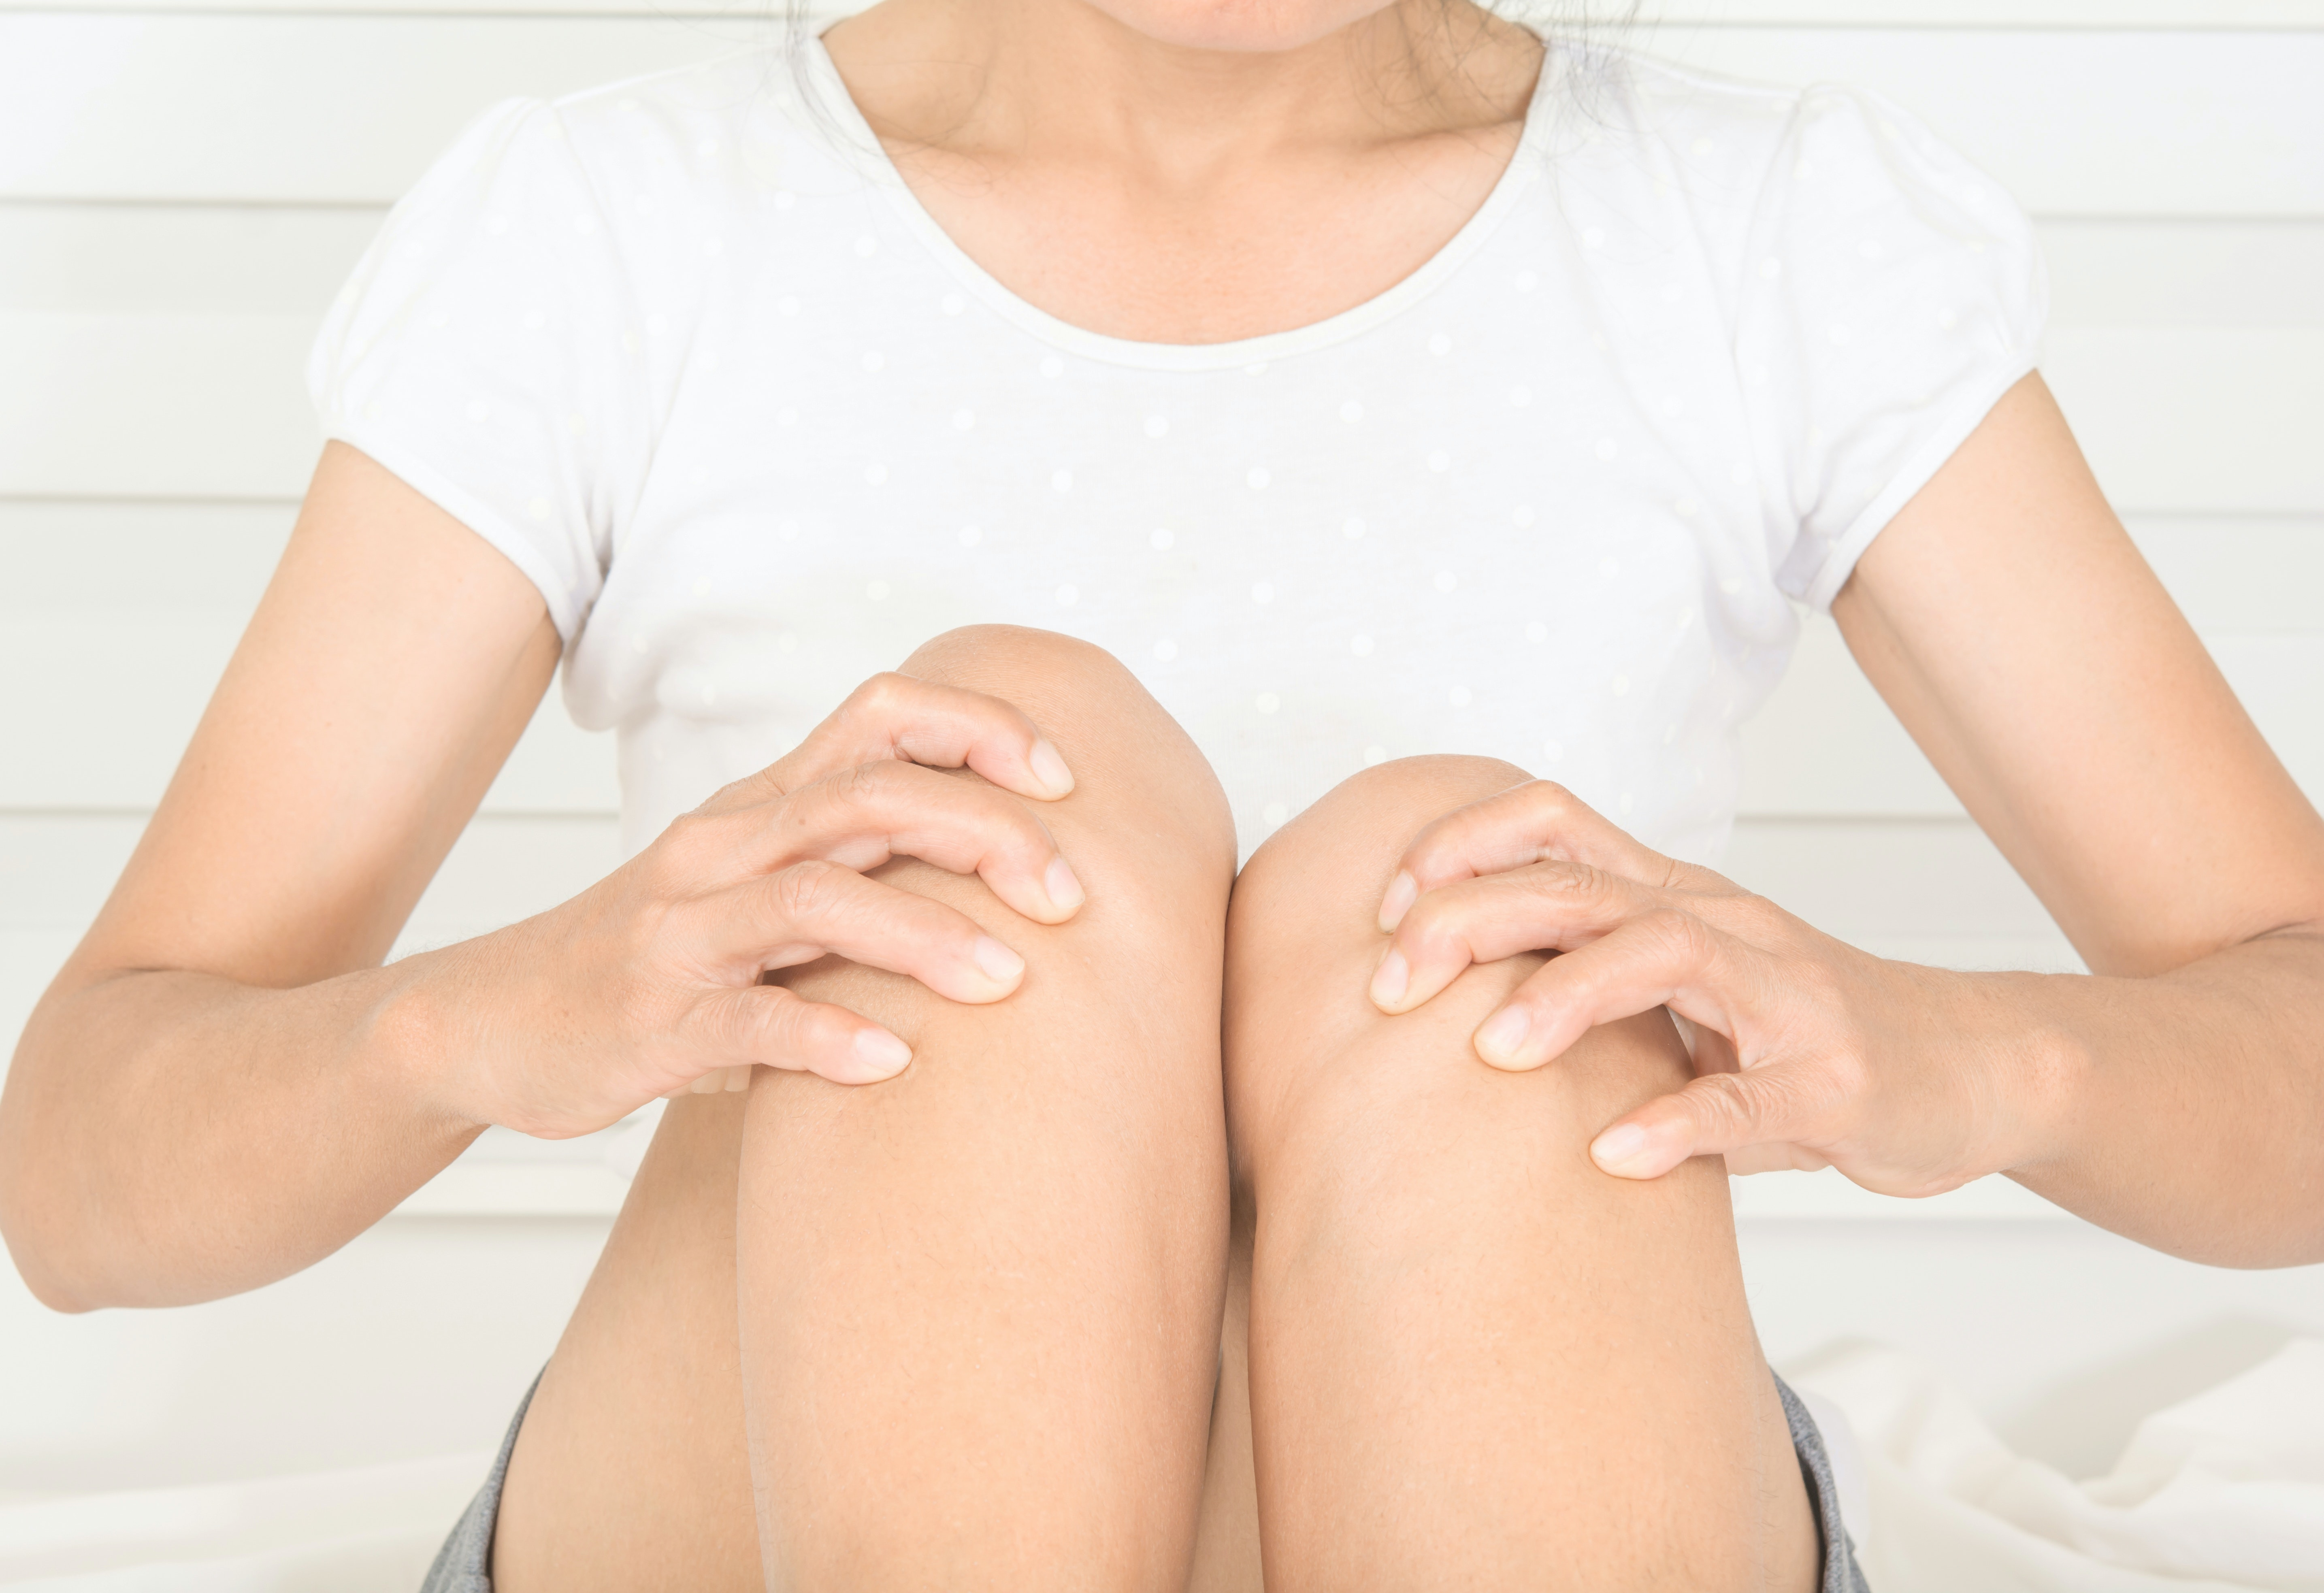 An image depicting a person suffering from knee skin changes symptoms